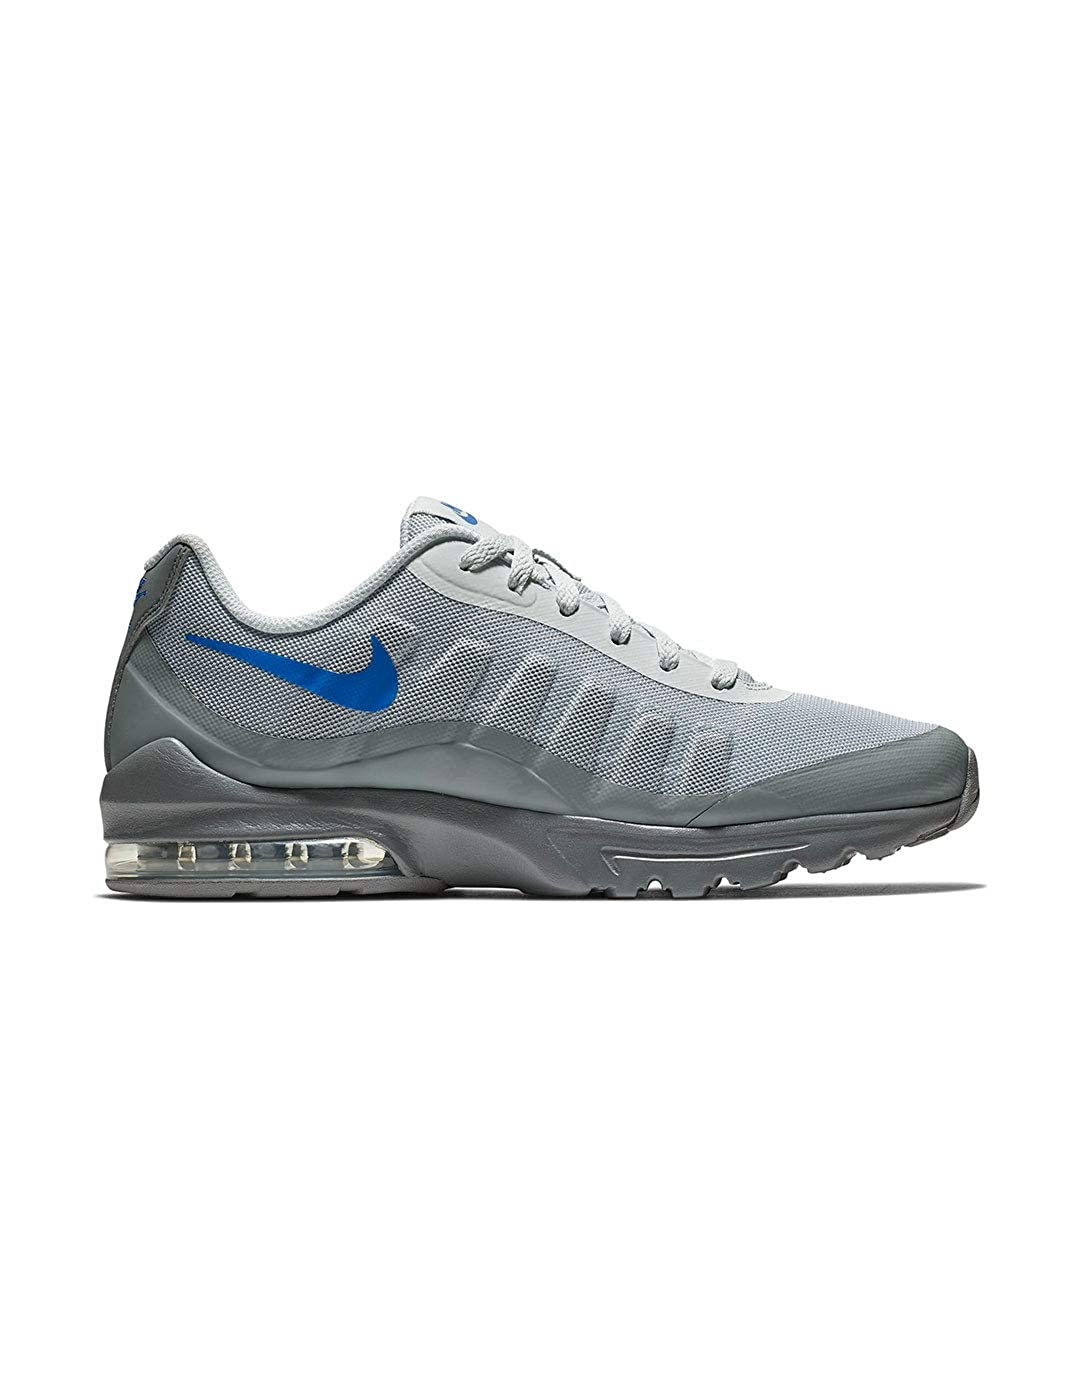 99d487518a017 NIKE Men's Air Max Invigor Print Running Shoes